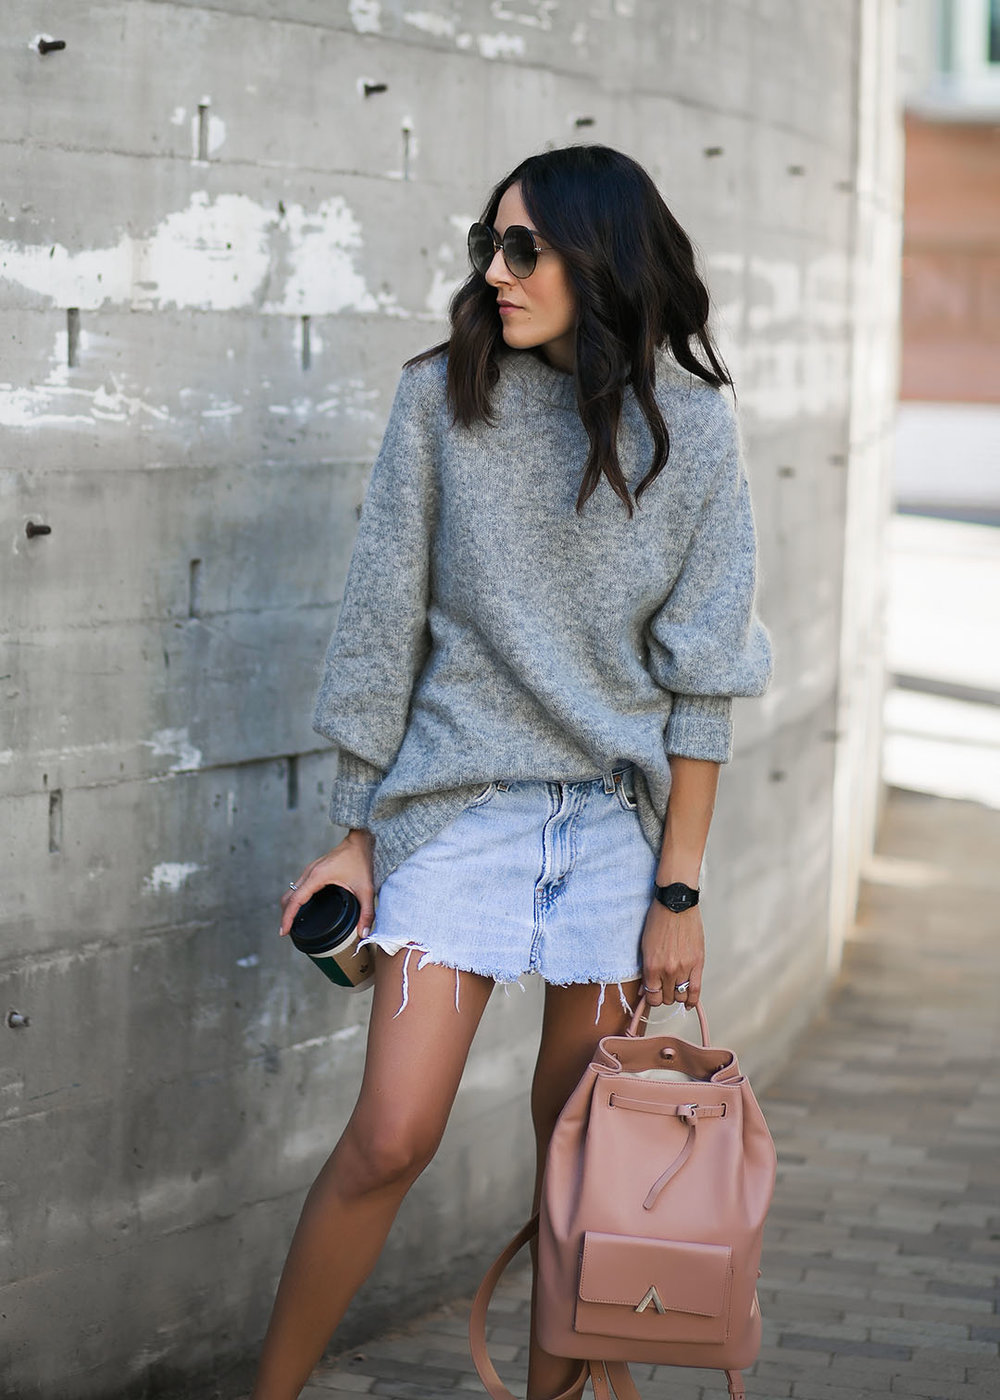 Esemble-Blush-Backpack-Mohair-Sweater.jpg